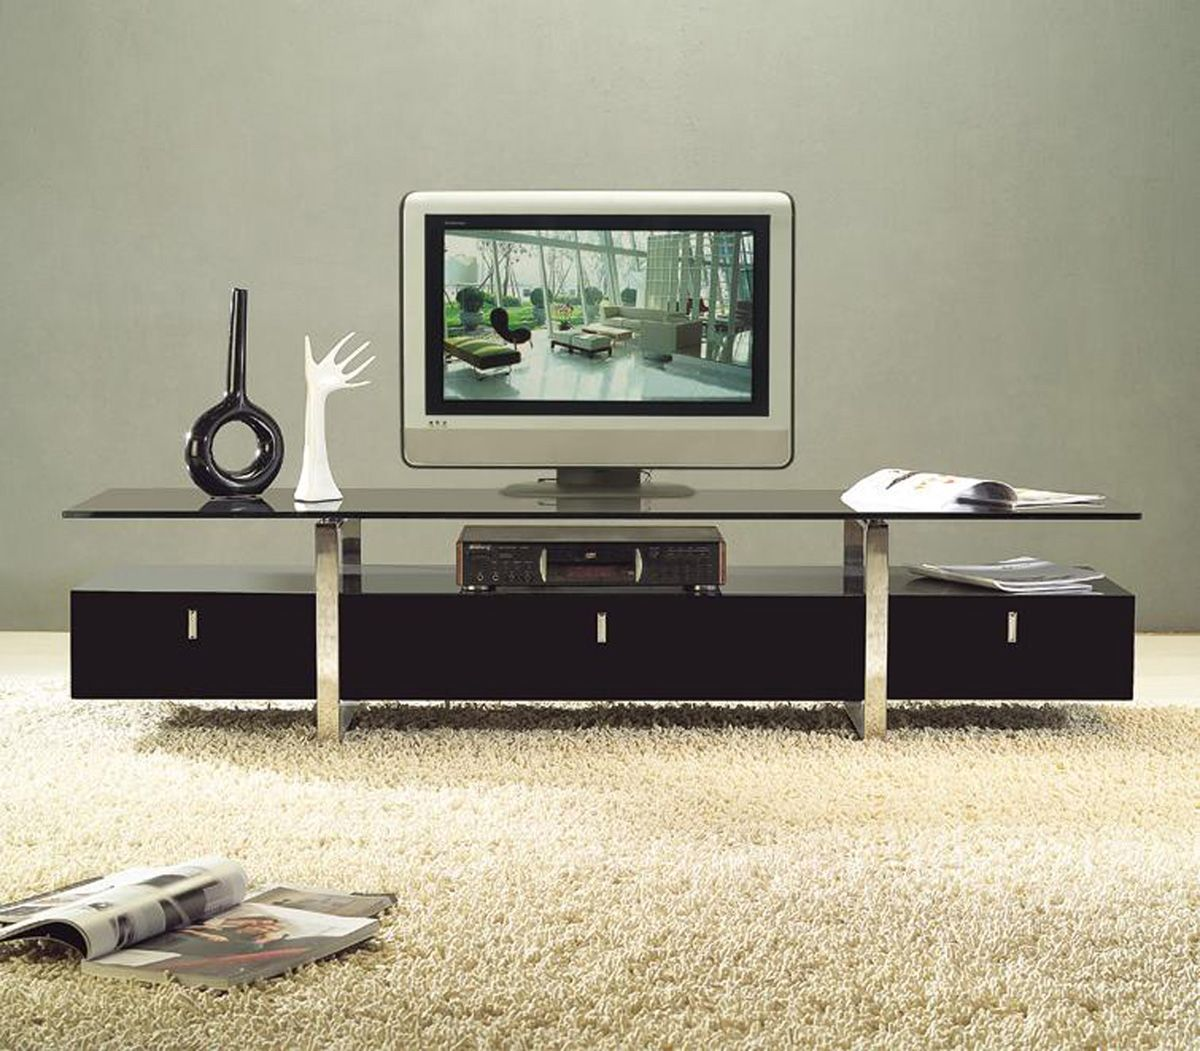 TV stand ideas modern for living room  bedroom small spaces flat screen tv entertainment centers Swish Flat Lcd Tv Stands